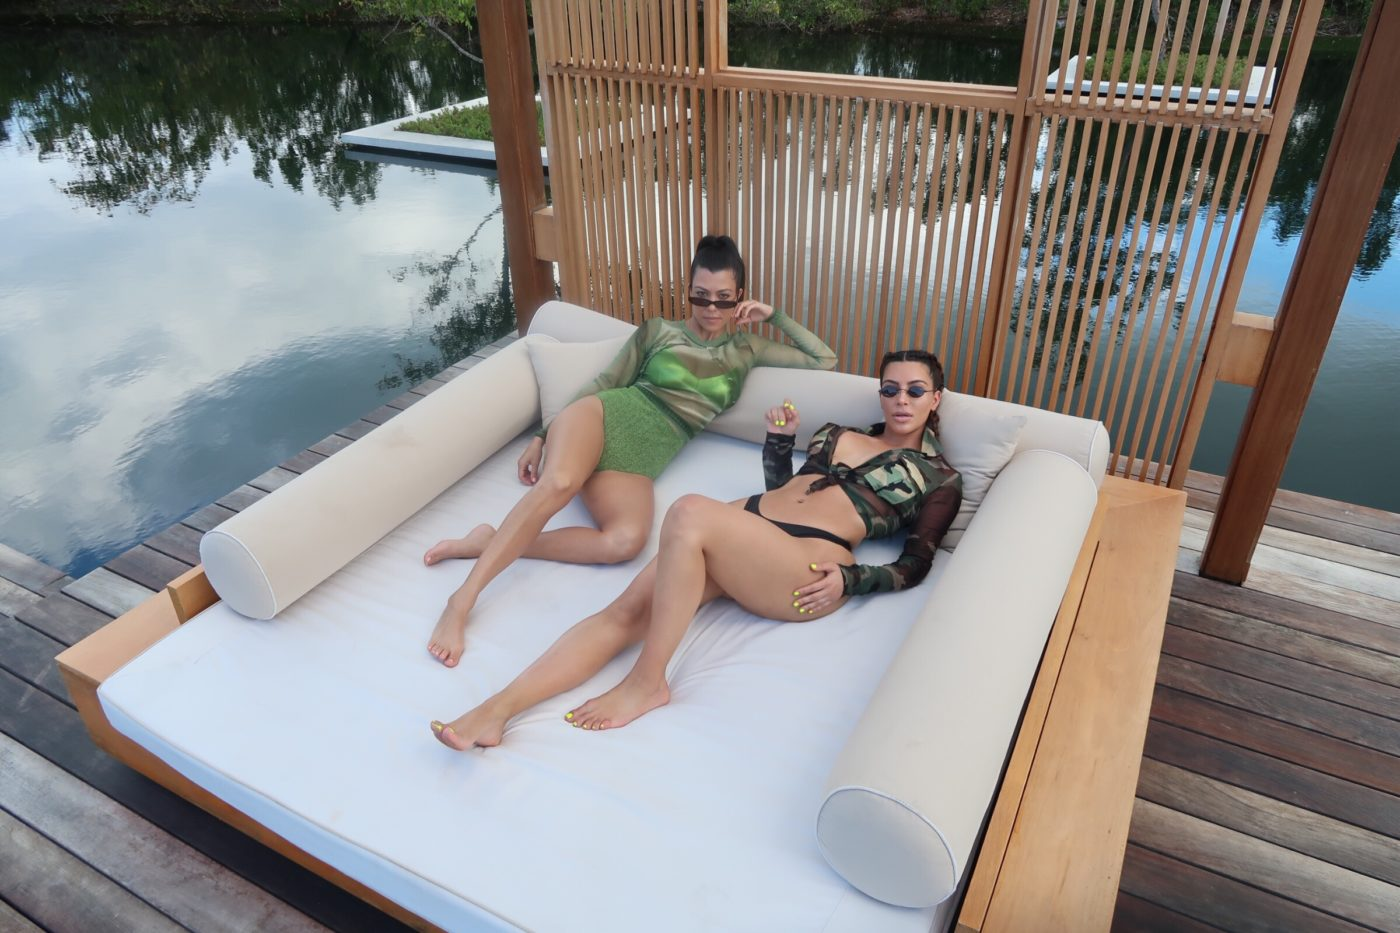 Kourtney and Kim Green Swimsuits by the Pool